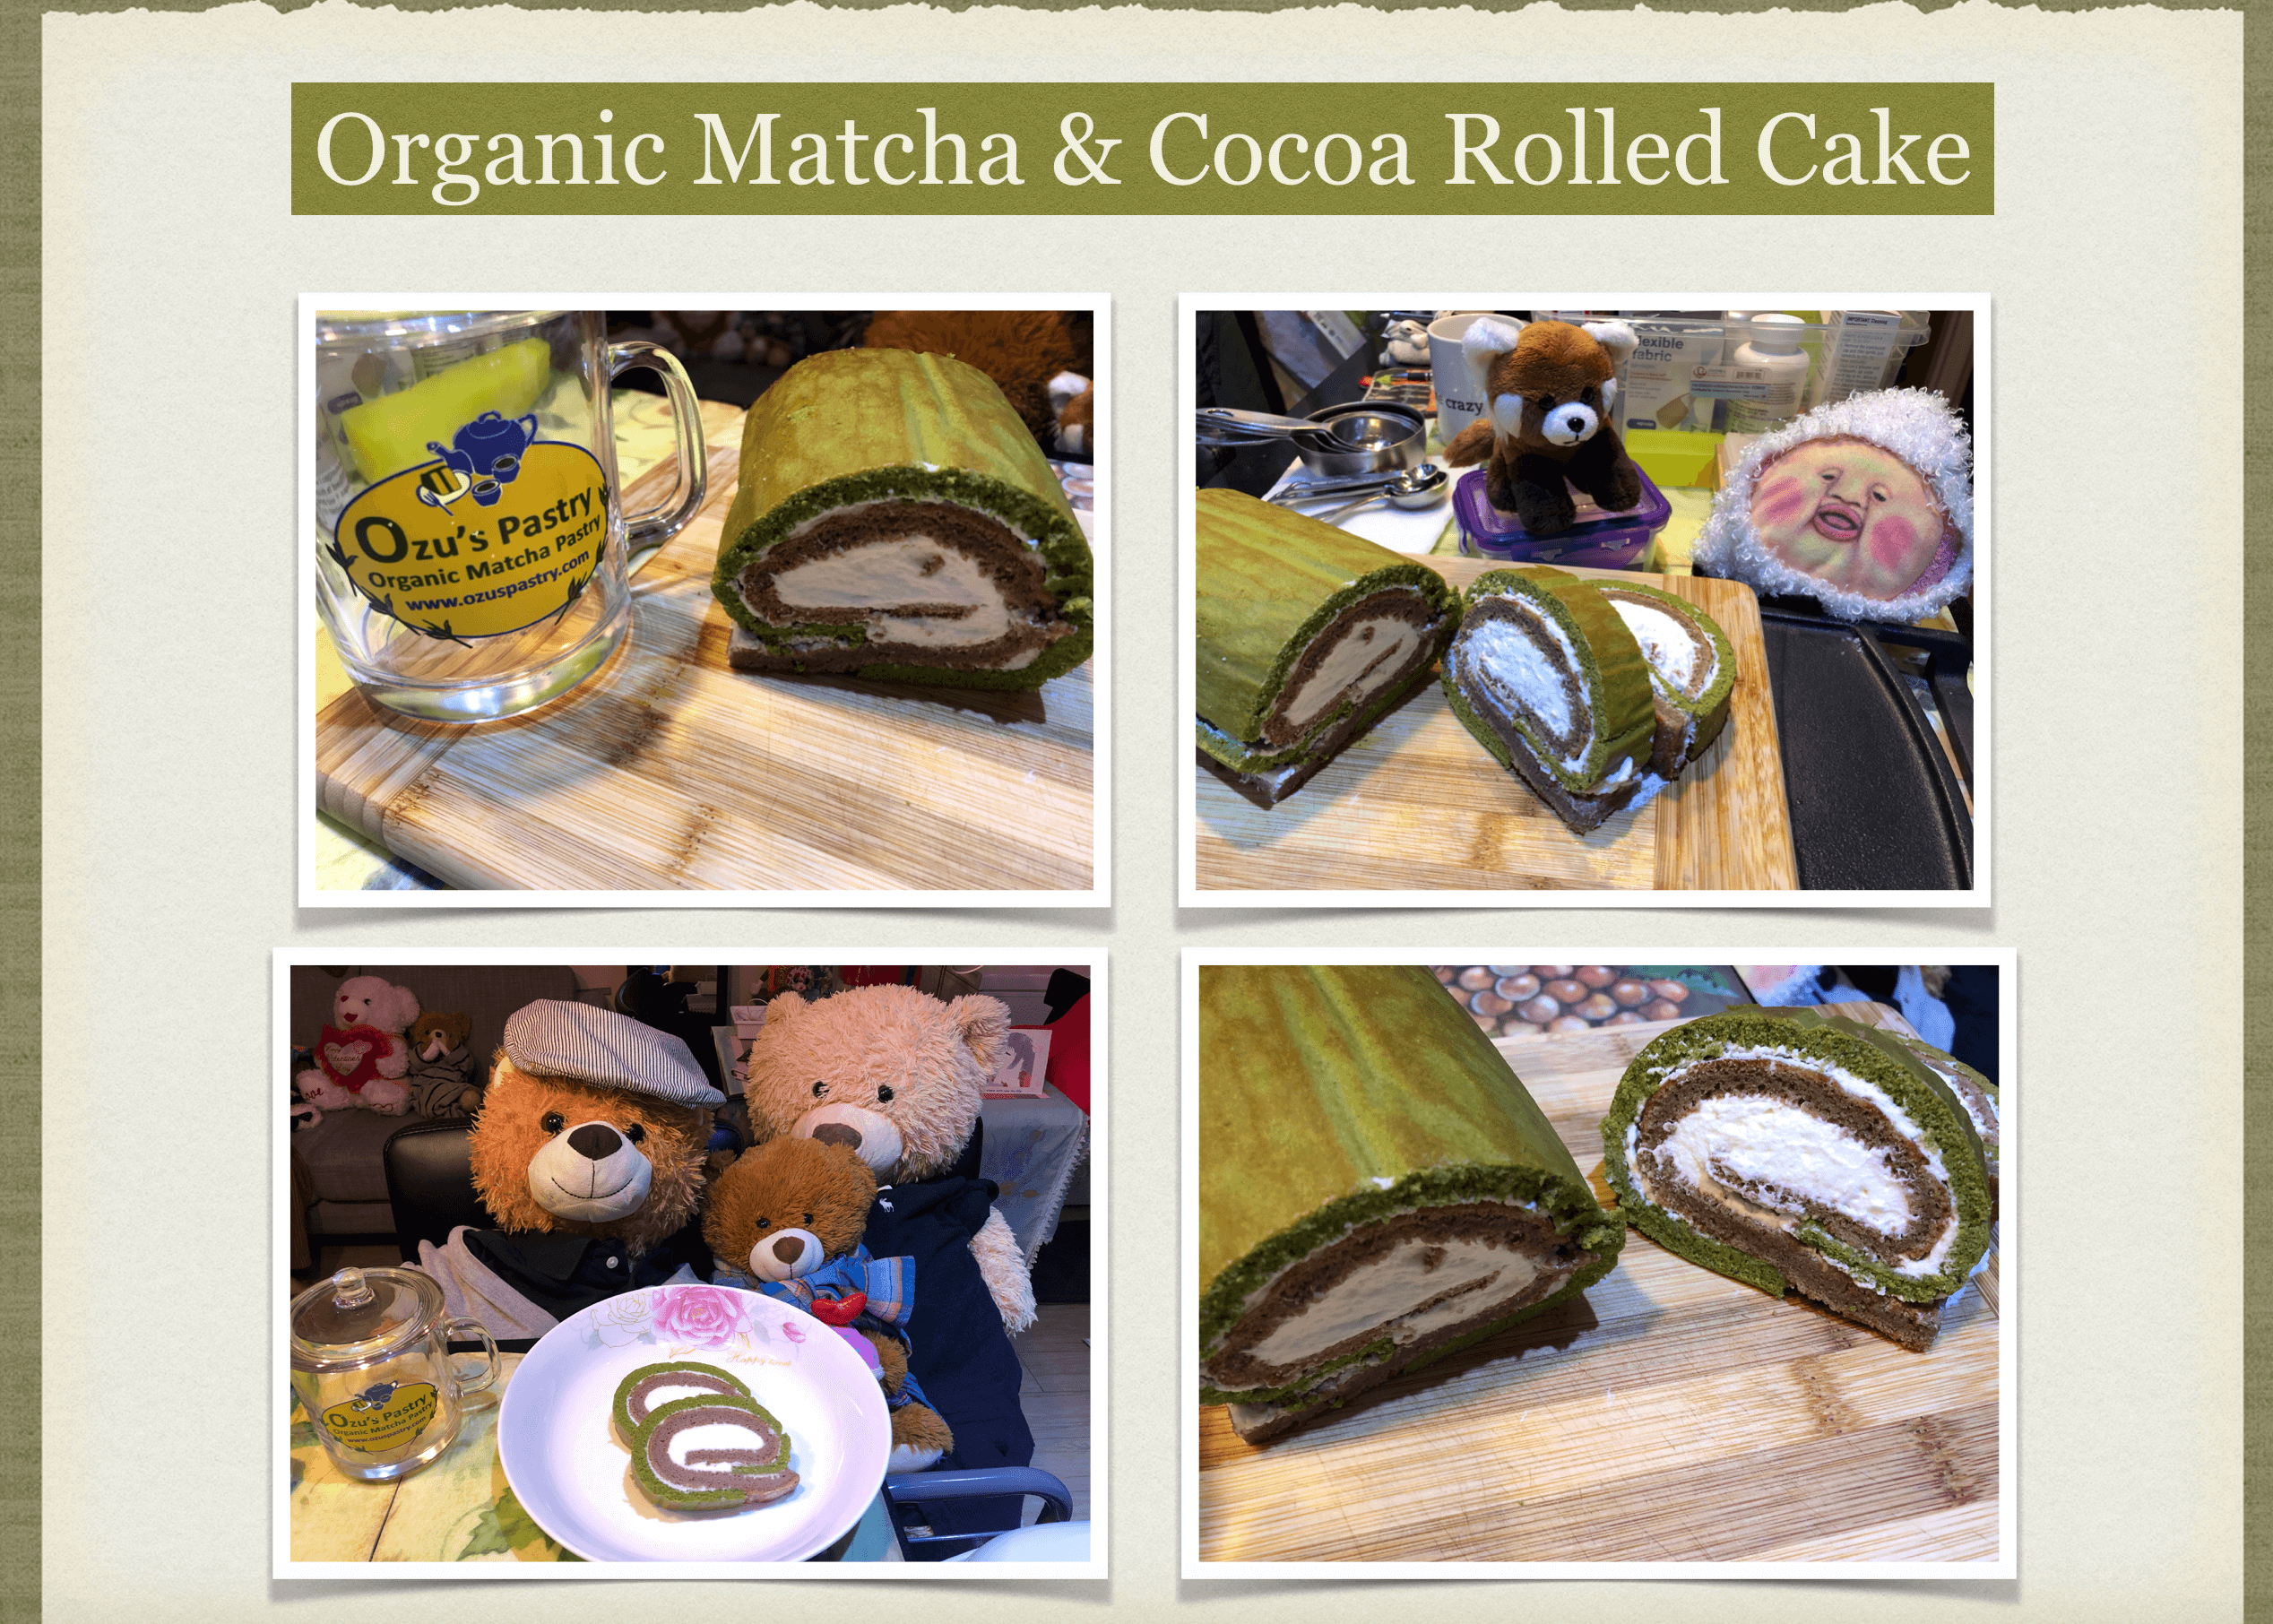 Matcha and Cocoa Rolled Cake